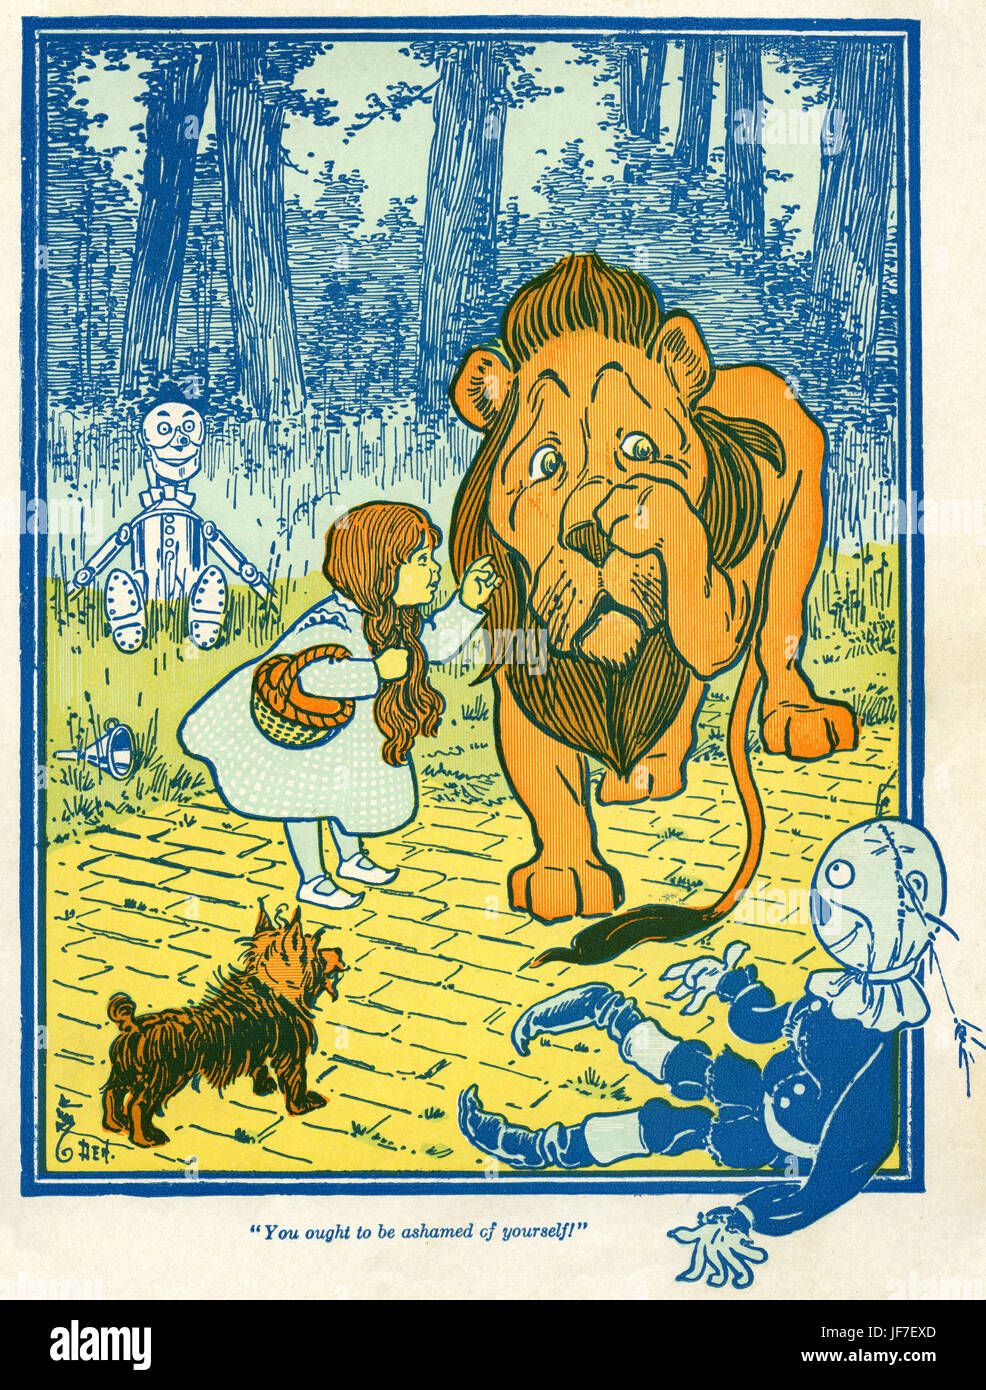 The wizard of oz by l frank baum book illustration by ww stock the wizard of oz by l frank baum book illustration by ww denslow caption you ought to be ashamed of yourself published by bobbs merill solutioingenieria Choice Image